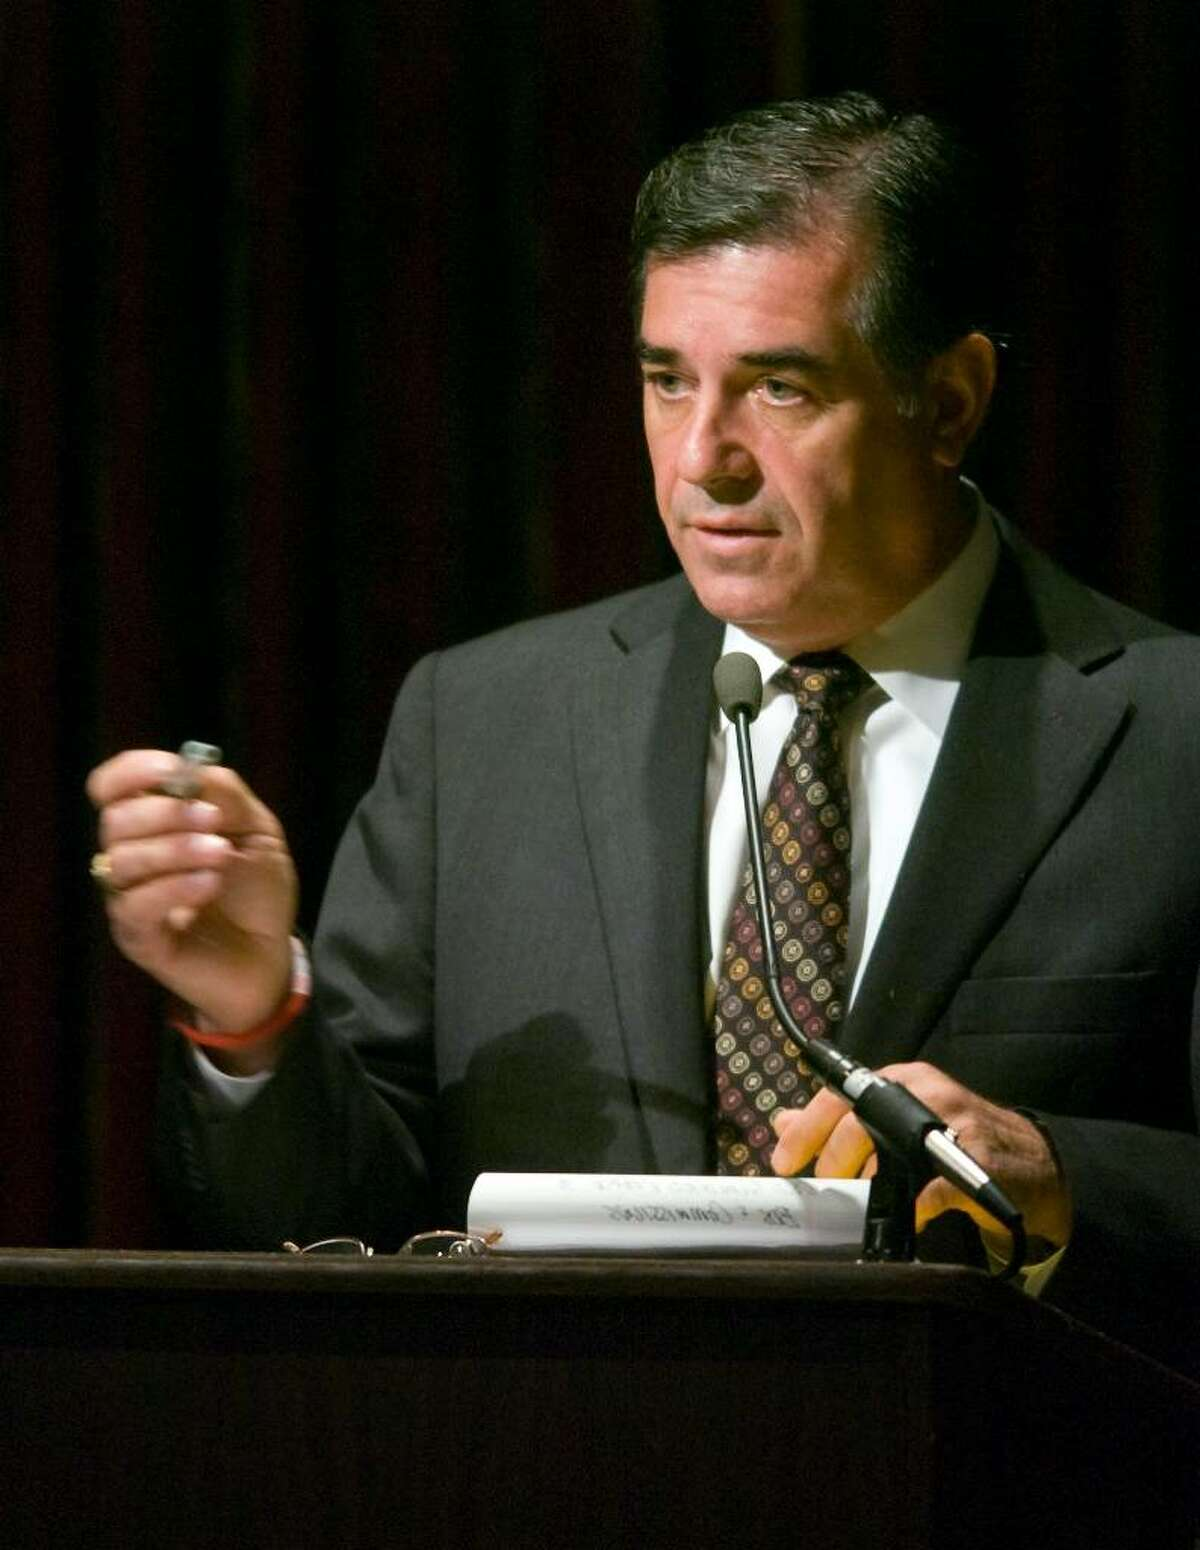 Republican mayoral candidate Michael Pavia speaks during a mayoral debate hosted by the The Prometheum at the Italian Center in Stamford, Conn. on Wednesday, October 21, 2009.